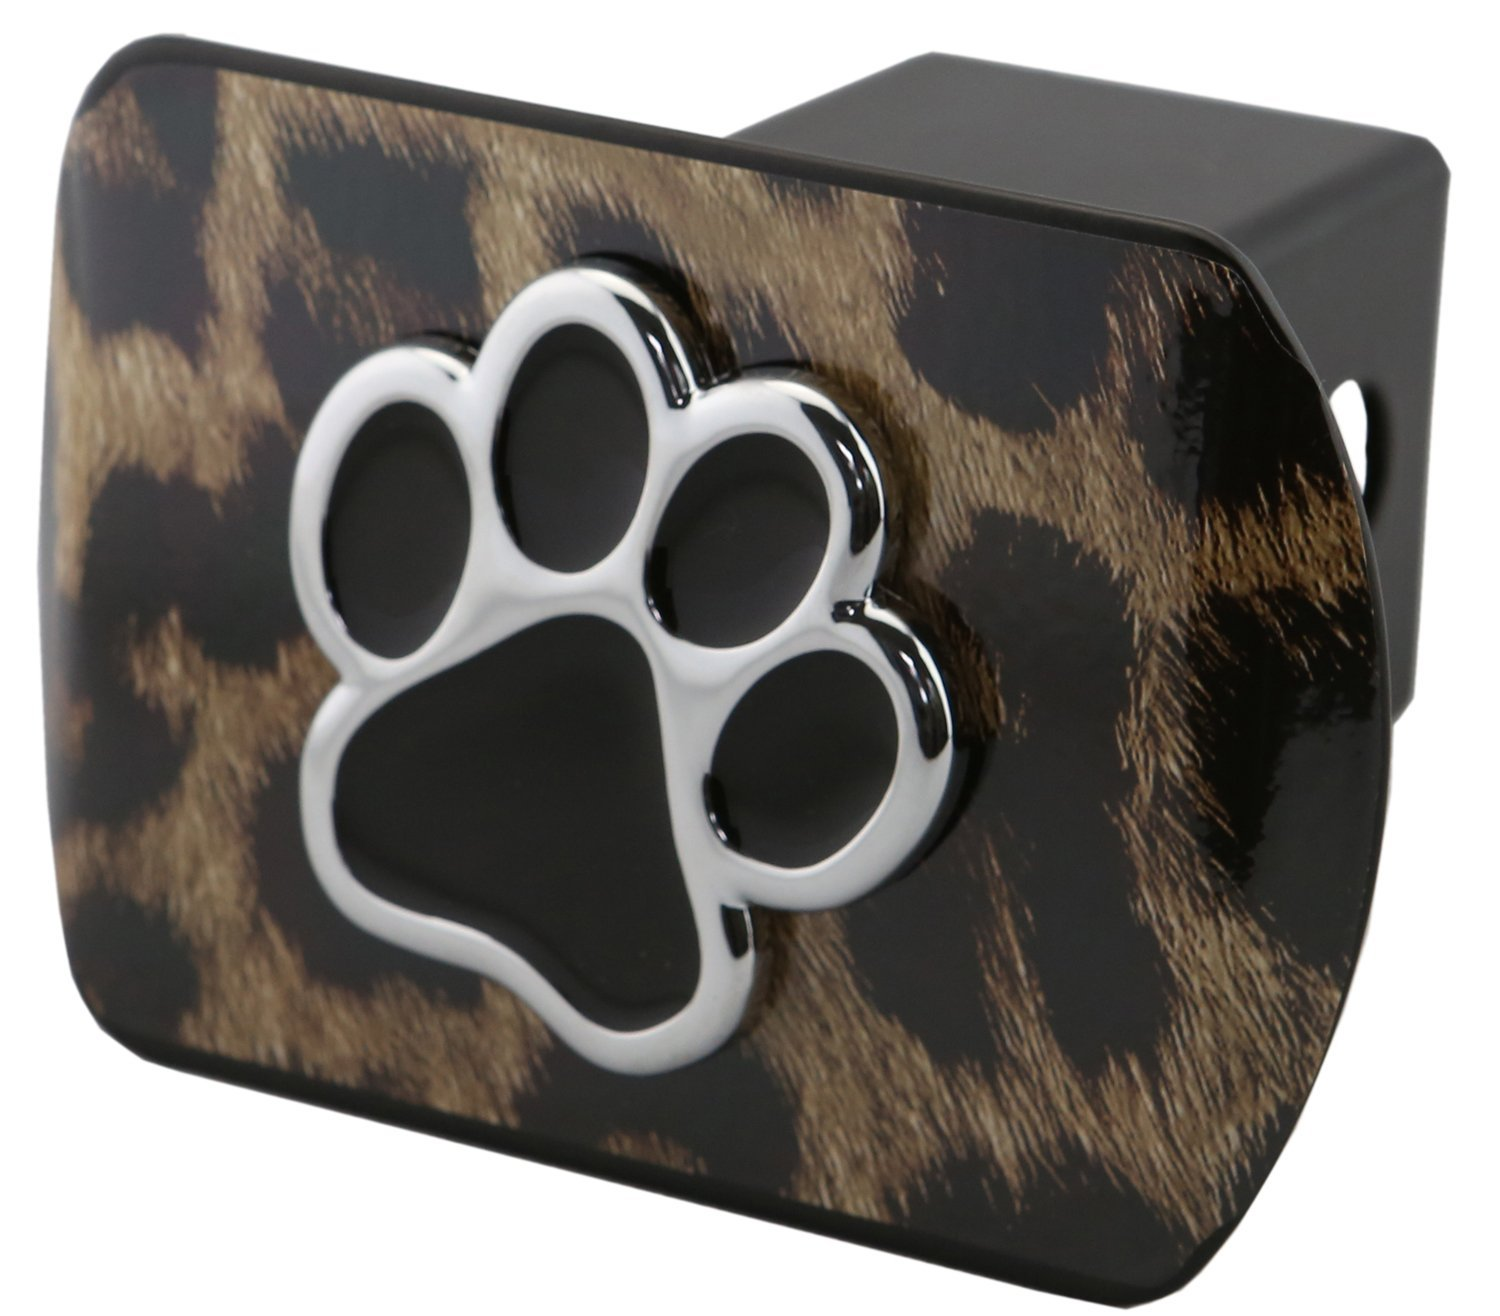 LFPartS Bear Dog Animal Paw Foot 3D Emblem Metal Trailer Hitch Cover Fits 2' Receivers (Black on Black) bparts